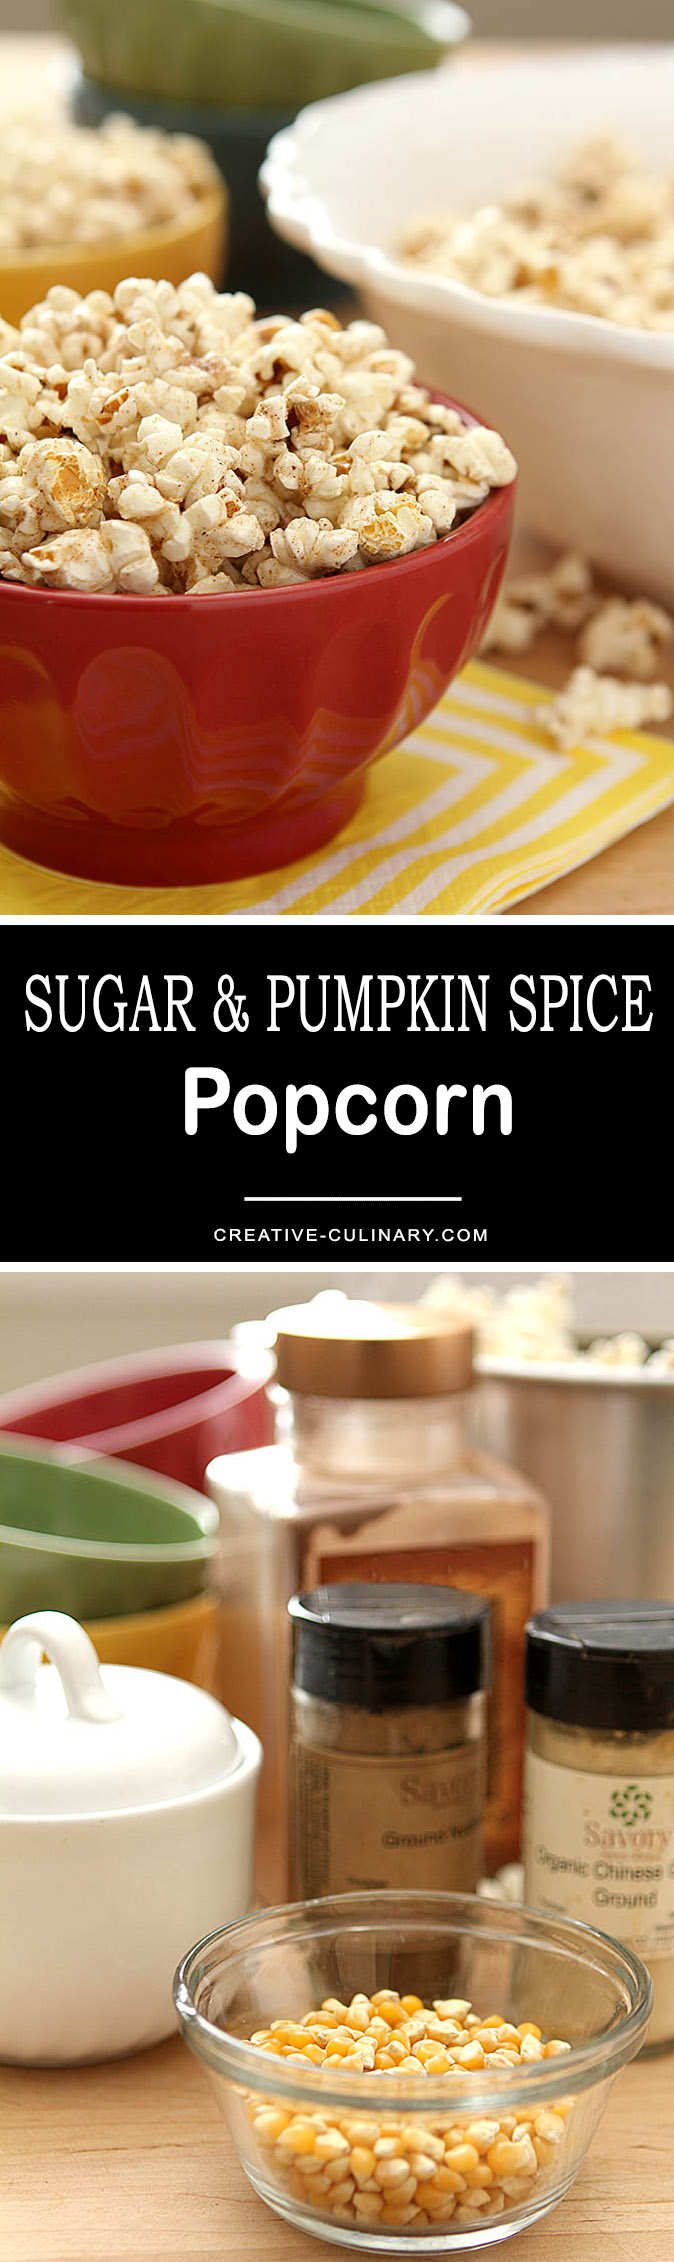 This recipe for Sugar and Pumpkin Spice Popcorn is so easy; no messy coatings or oven baking required. Simply combine butter, sugar, cinnamon, nutmeg and ground ginger and add to your popcorn. DELICIOUS!